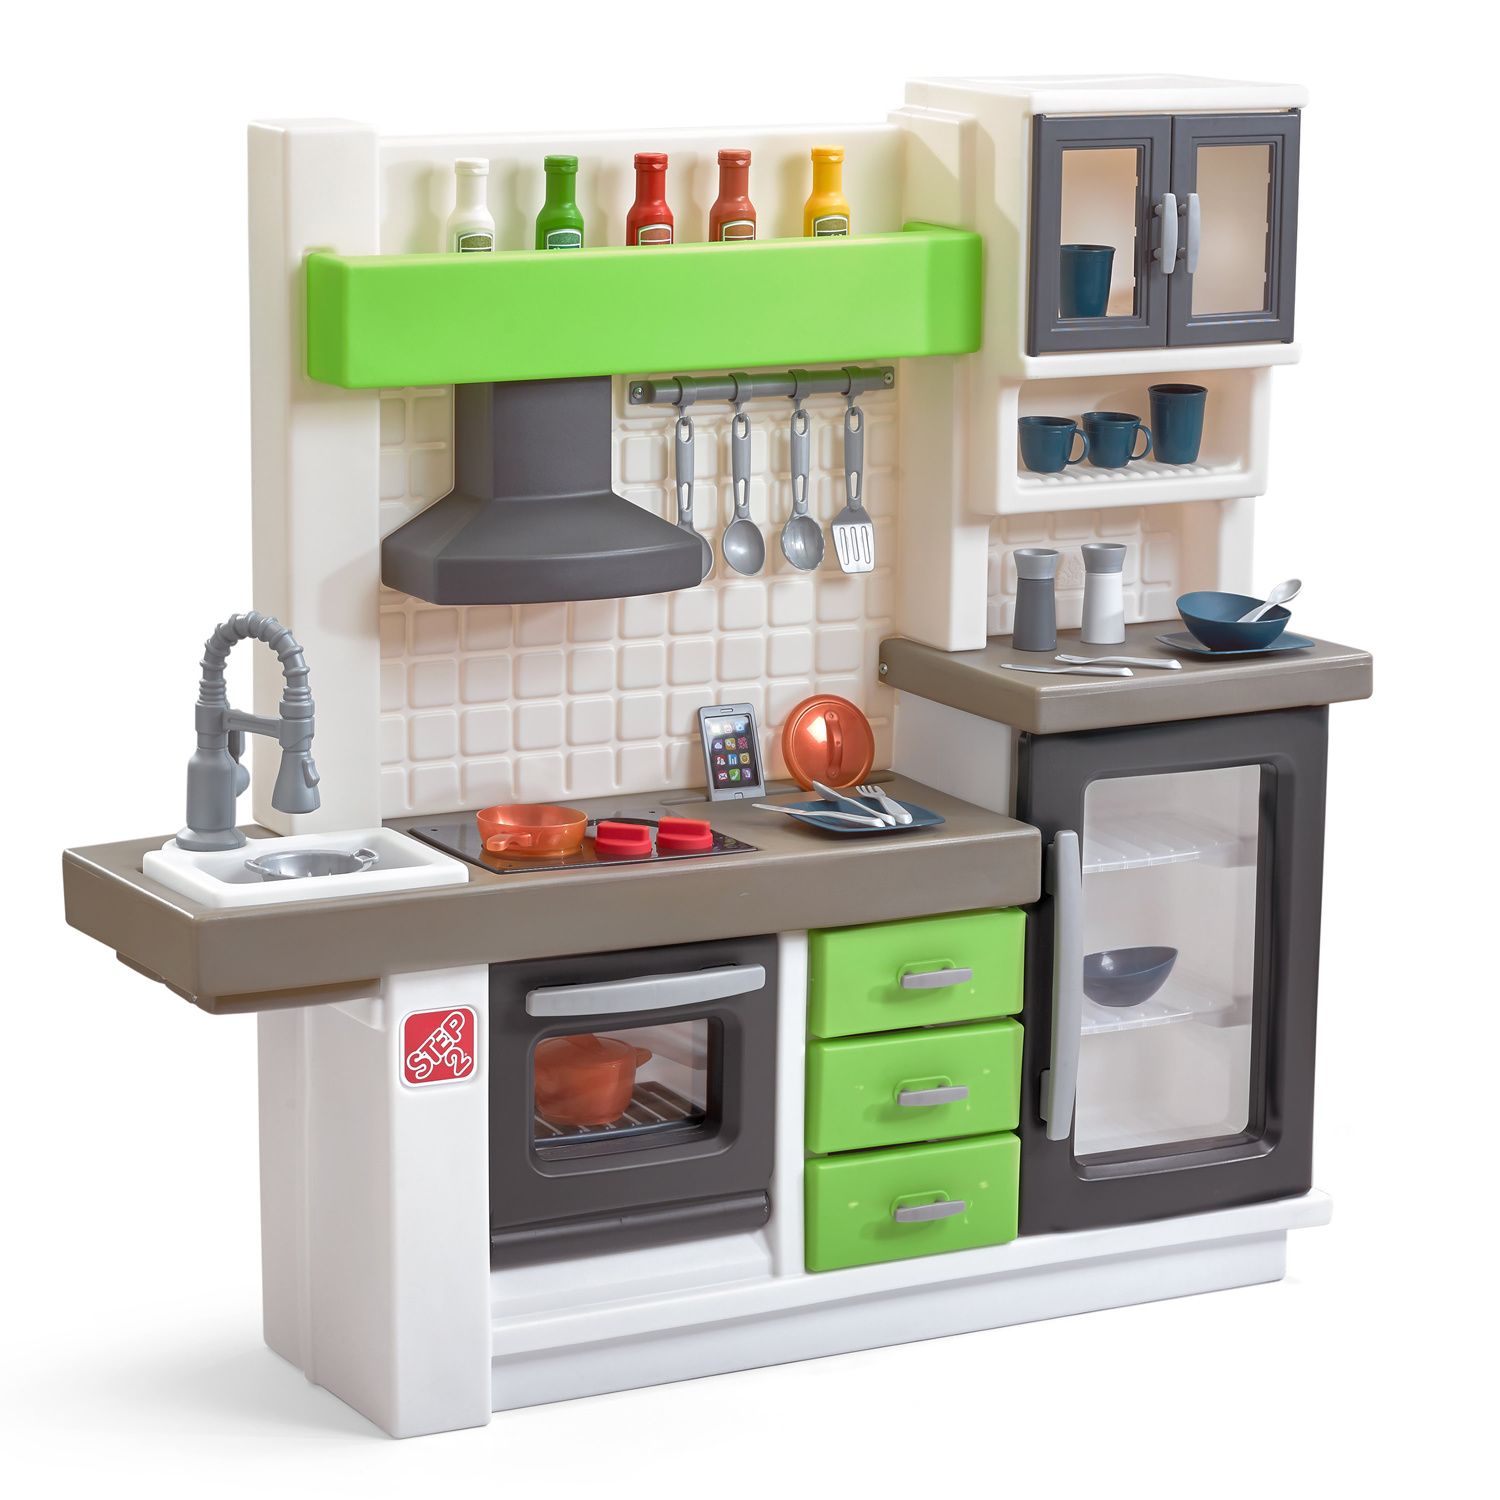 Step2 Euro Edge Kitchen by The Step2 Company